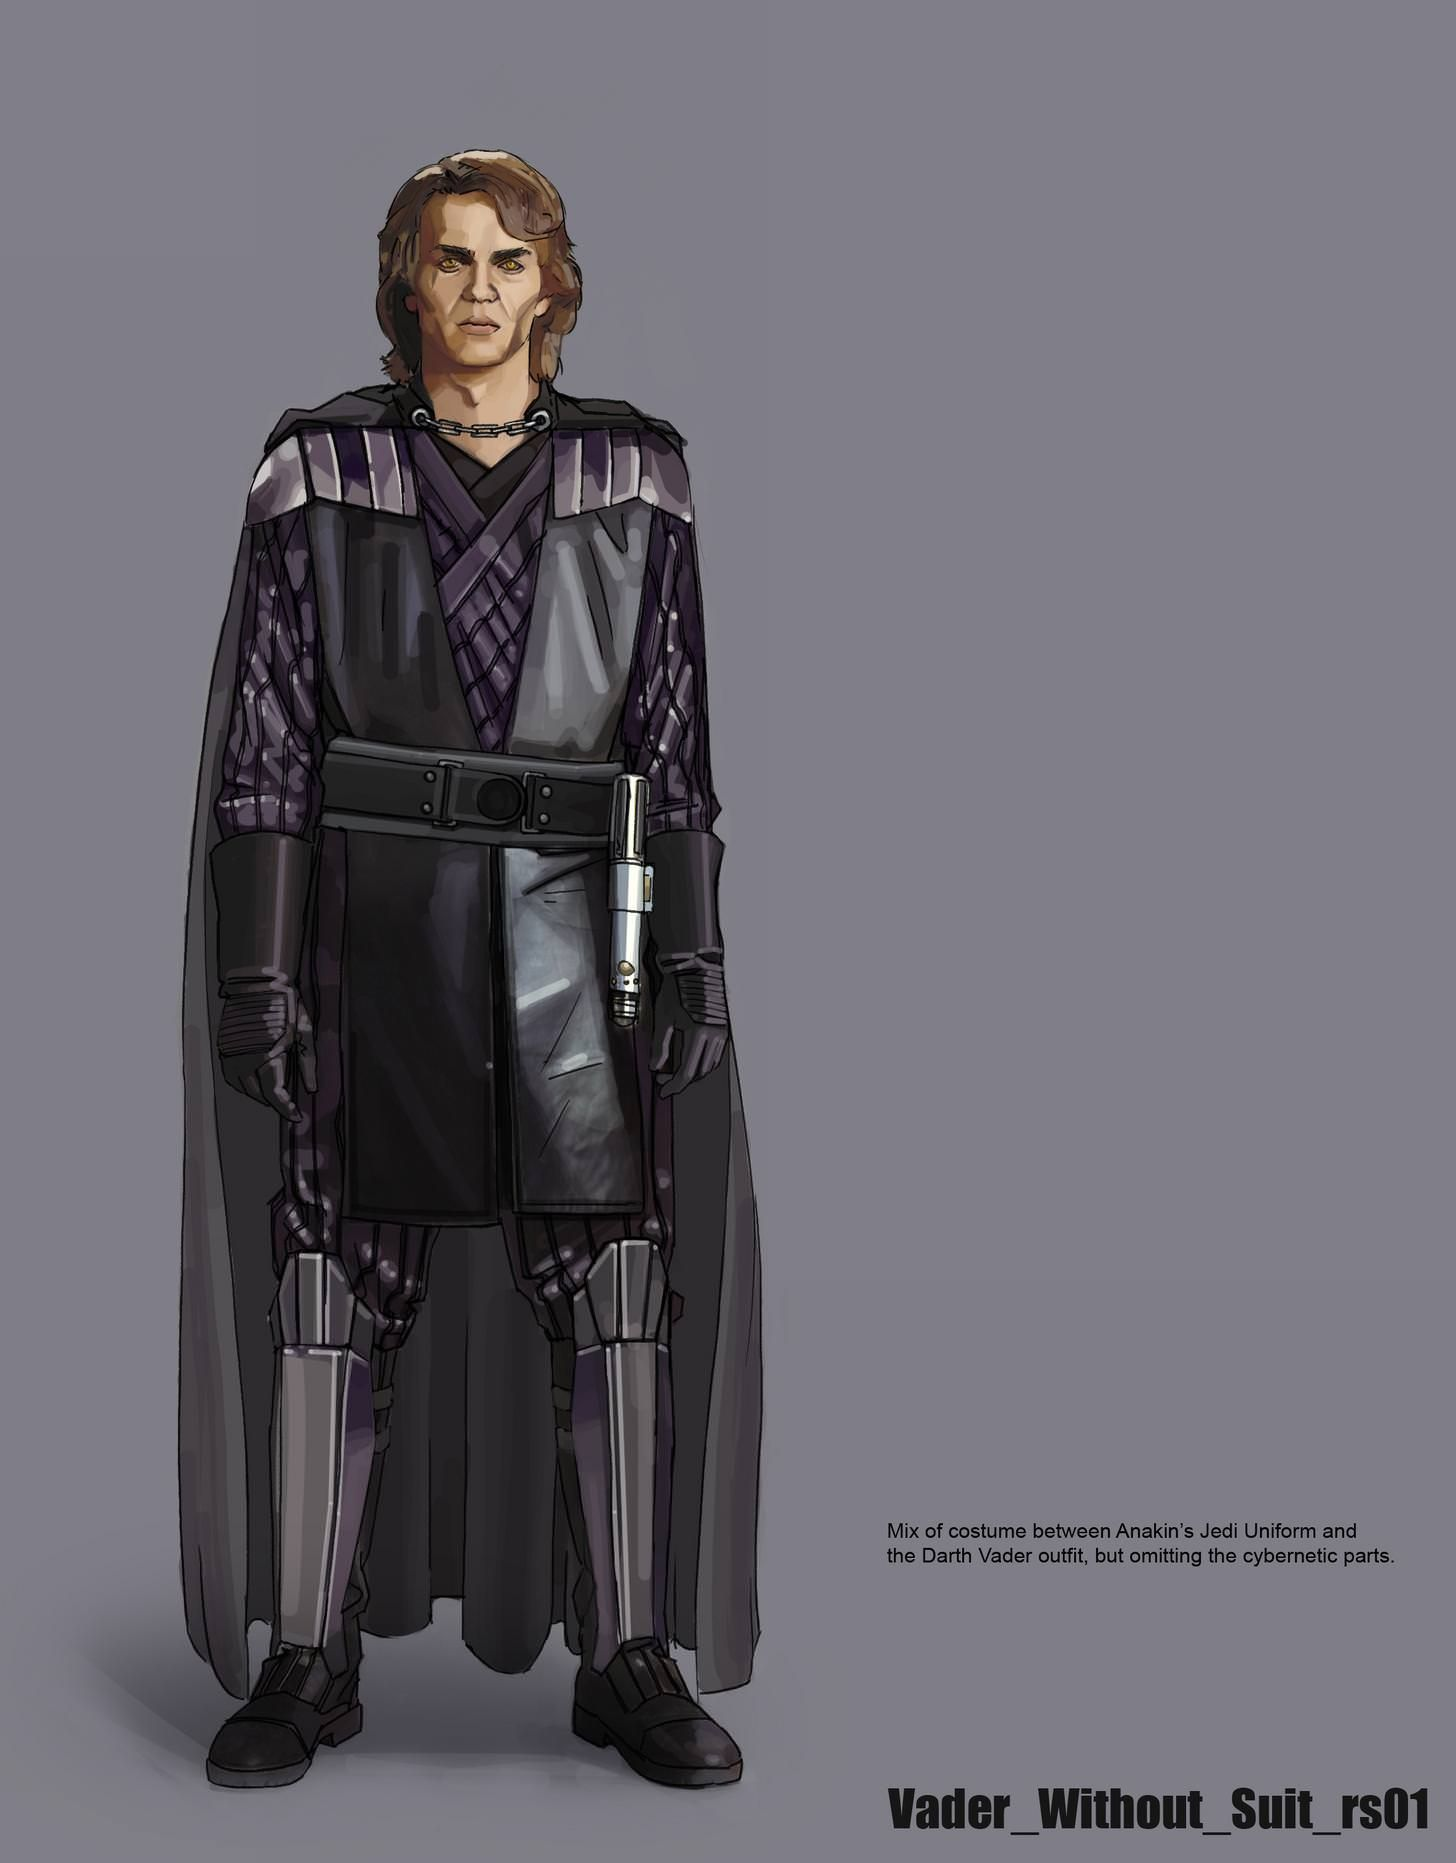 Star Wars Battlefront Iv Concept Art Frd Star Wars Concept Art